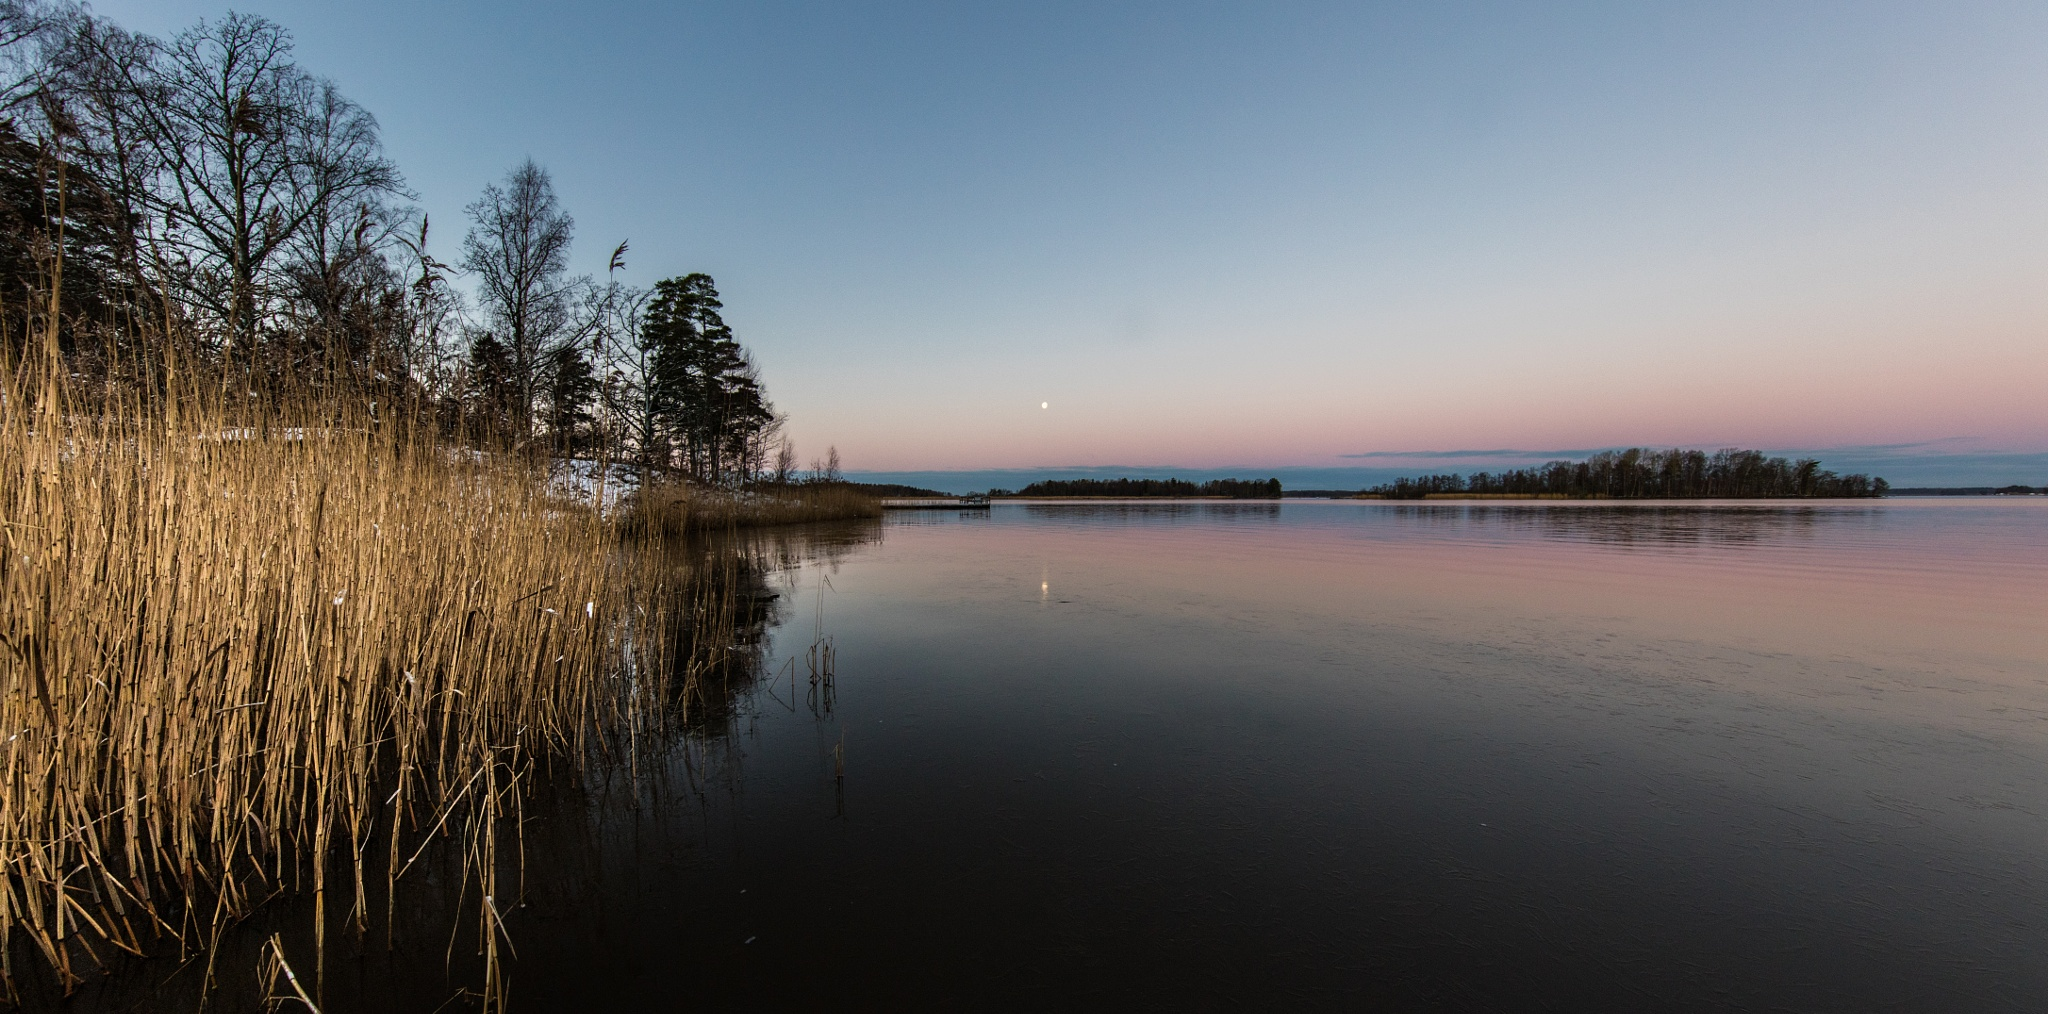 winter evening, Sweden by hutchst